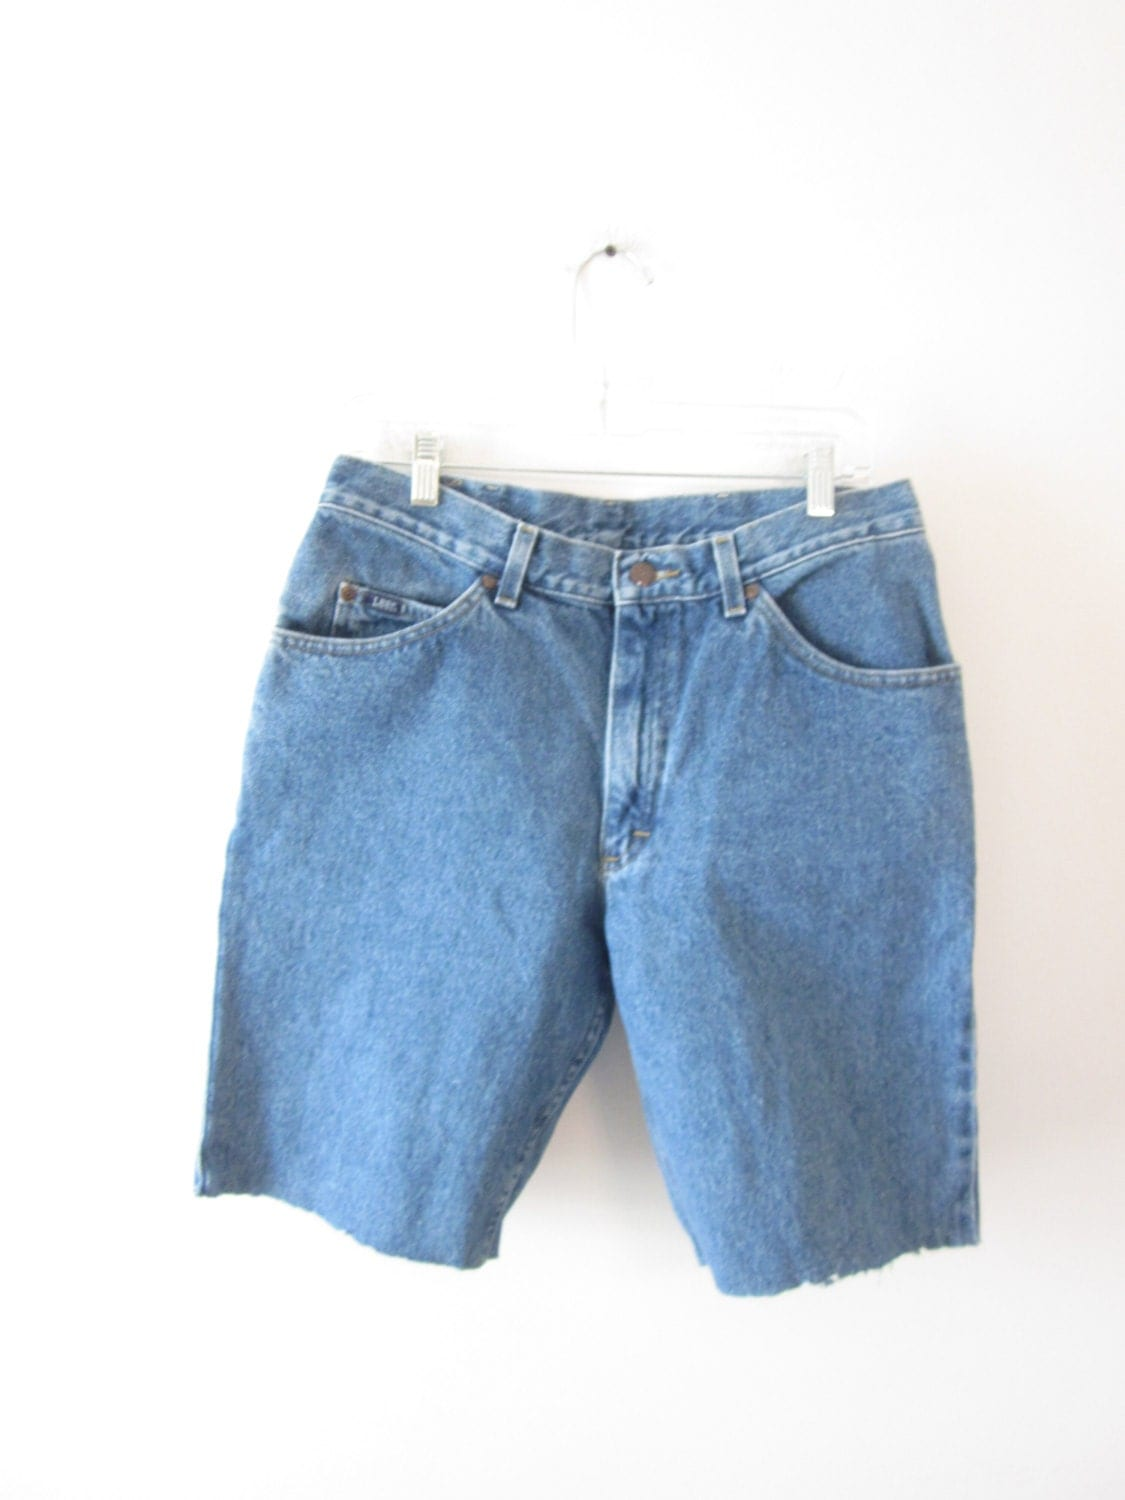 Vintage Cut Off Denim Shorts starting at $